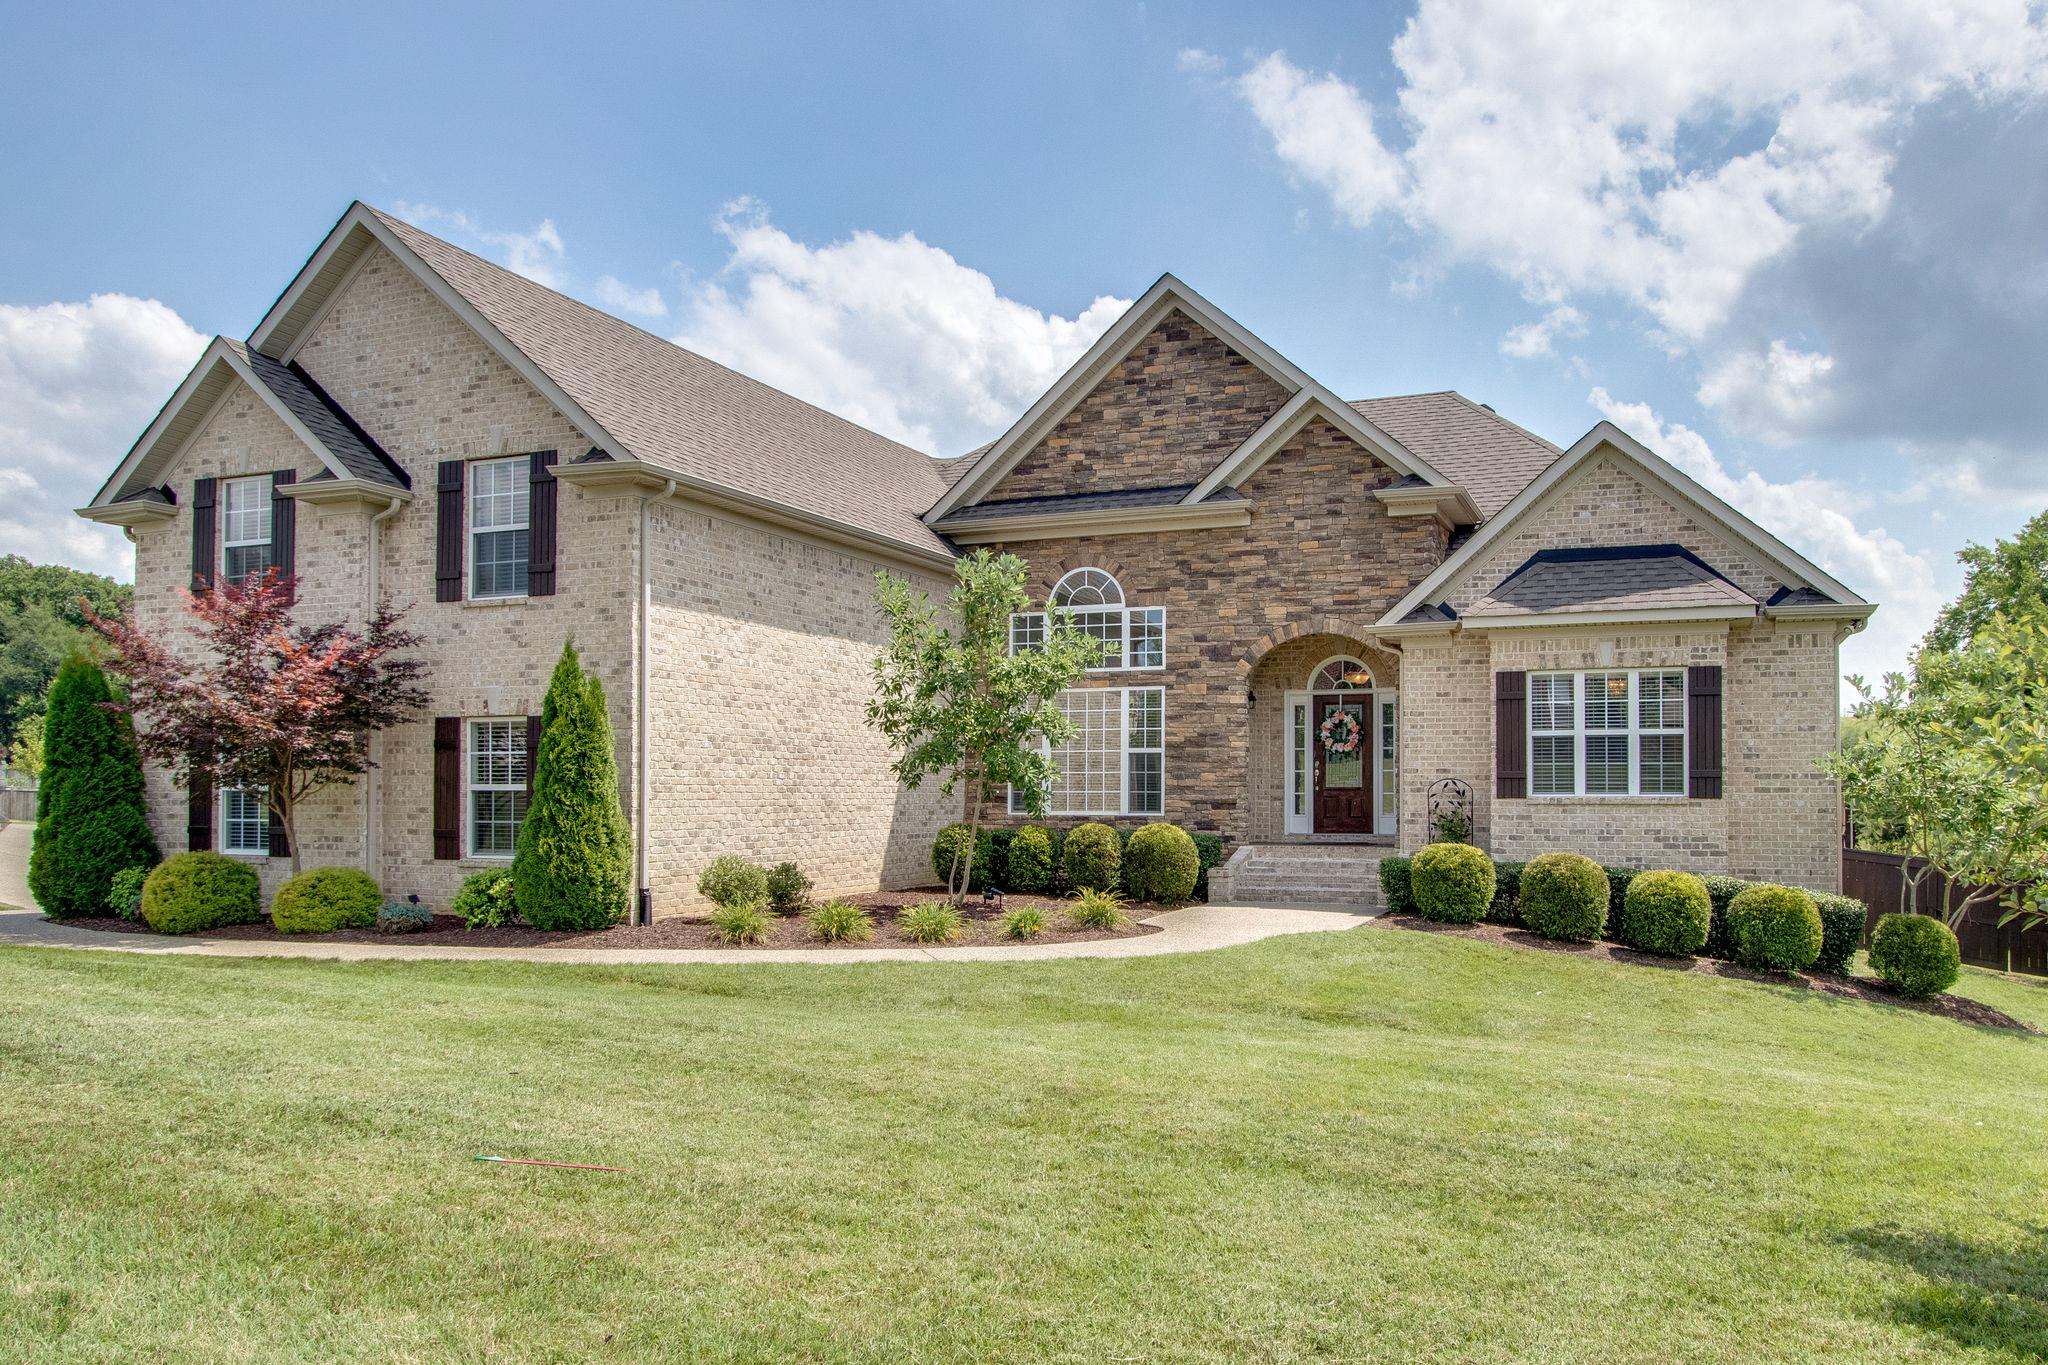 1028 Berkshire Blvd, Mount Juliet, TN 37122 - Mount Juliet, TN real estate listing